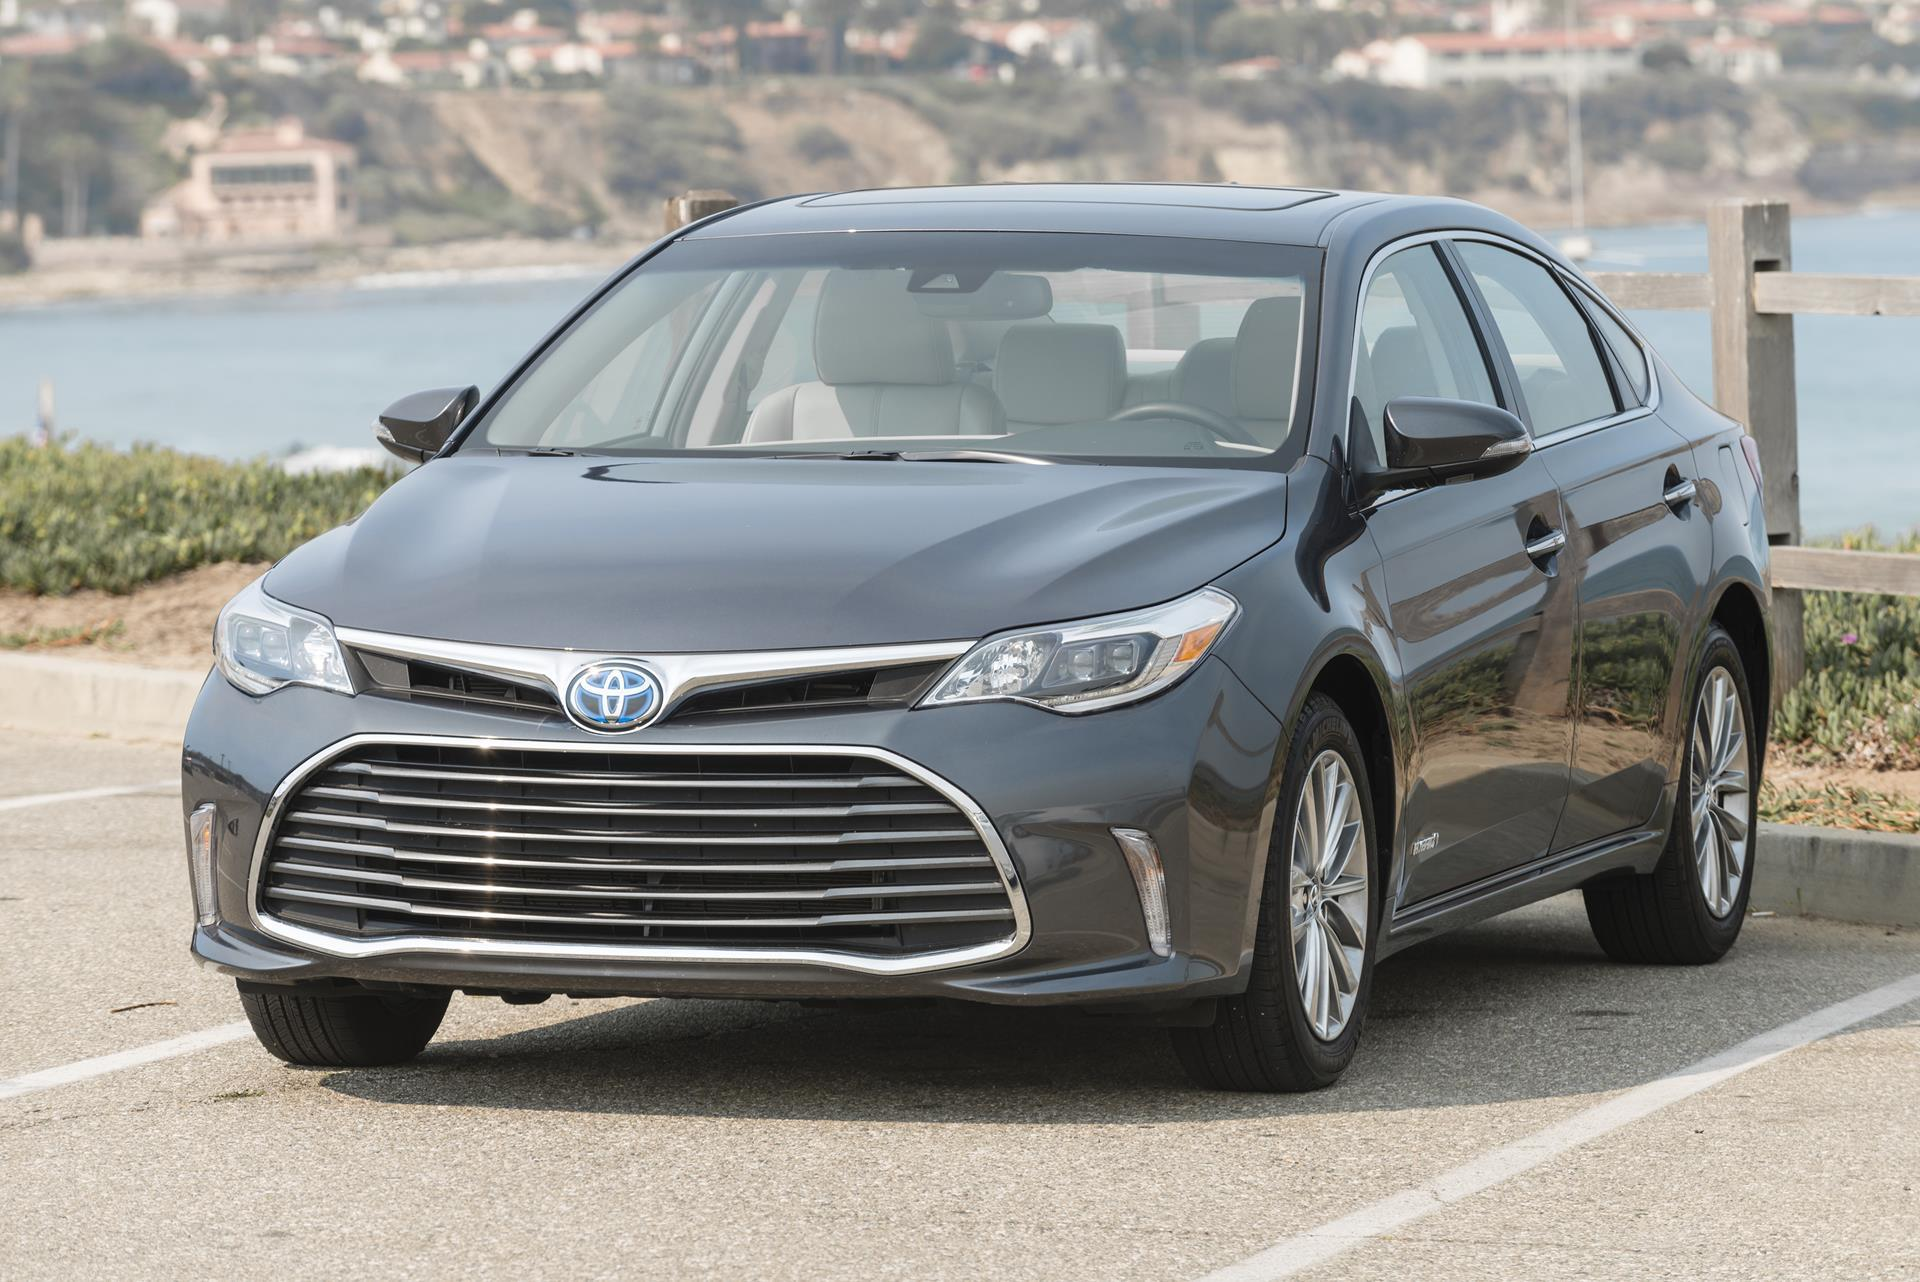 2017 toyota avalon hybrid technical specifications and data engine dimensions and mechanical. Black Bedroom Furniture Sets. Home Design Ideas